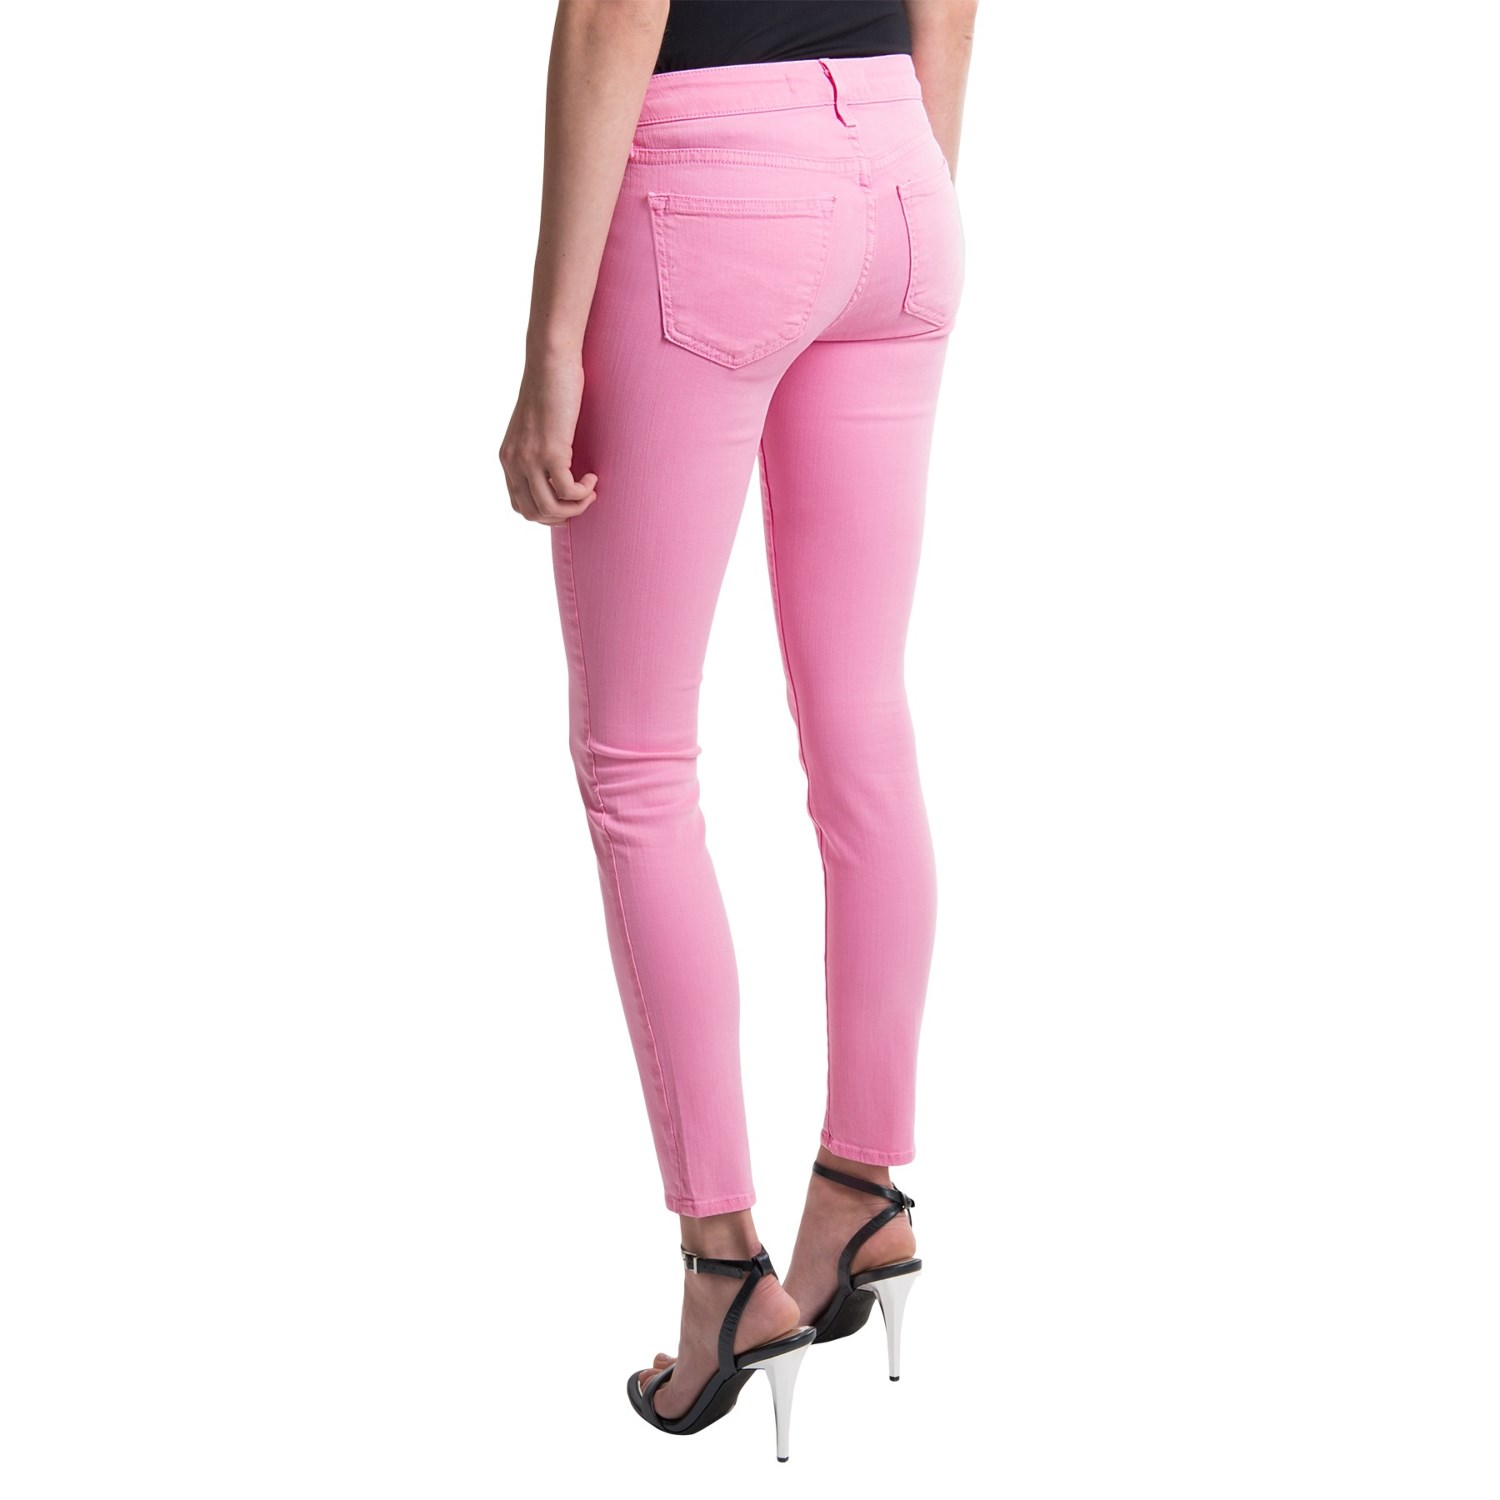 Skinny Jeans For Women Colored Red Black